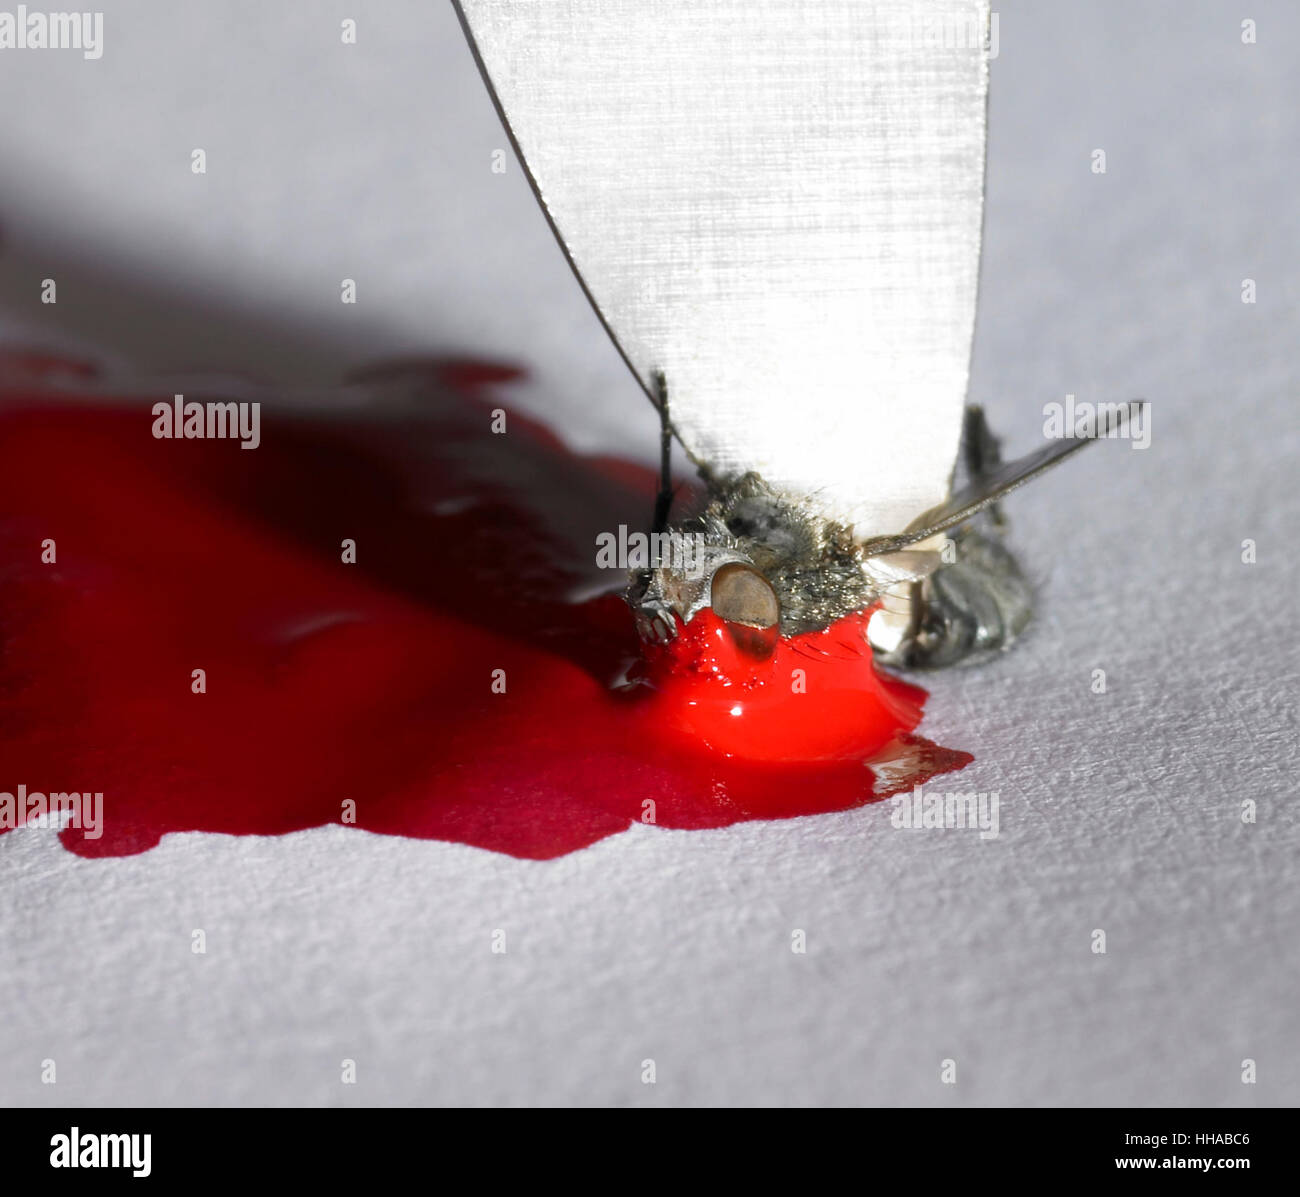 closeup shot showing a weird scene with fly, blade and red paint... - Stock Image